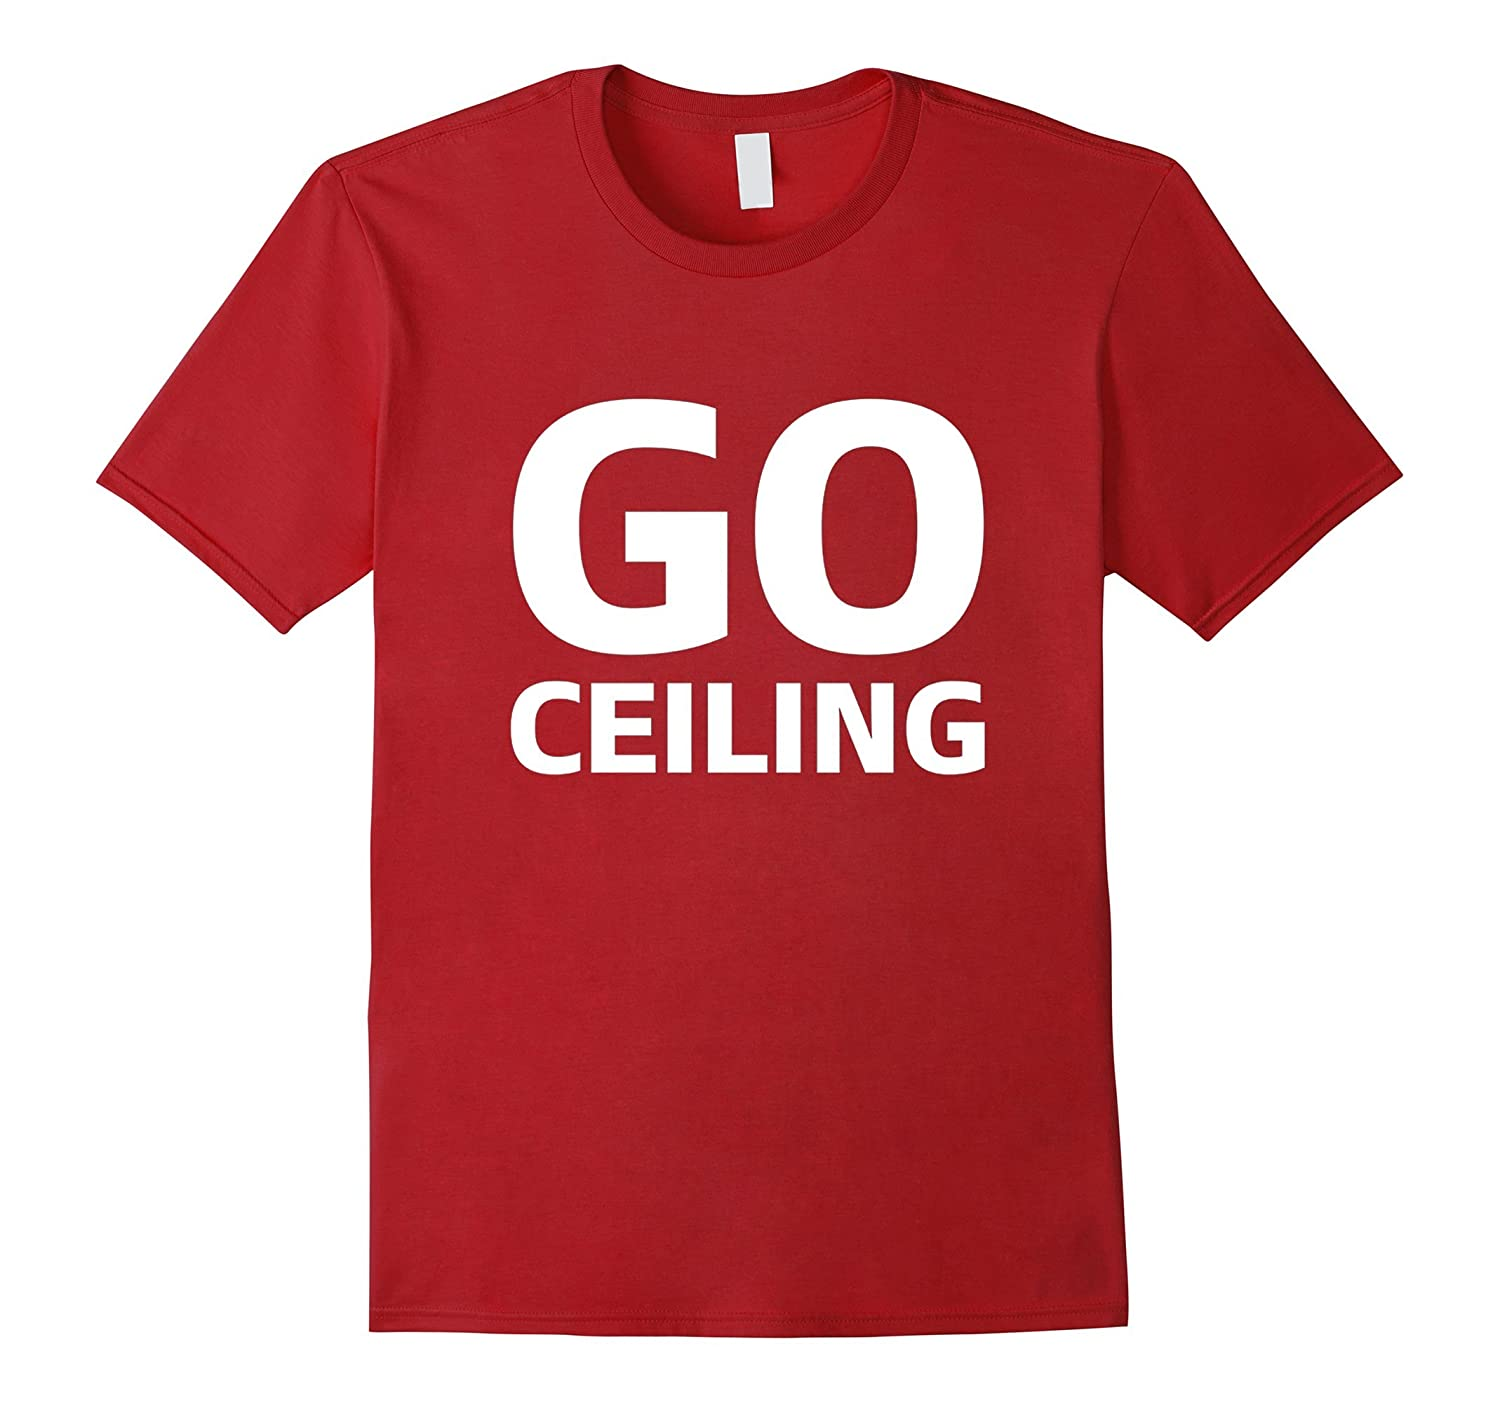 Go ceiling fan funny simple halloween costume t shirt tee bn go ceiling fan funny simple halloween costume t shirt tee bn aloadofball Images